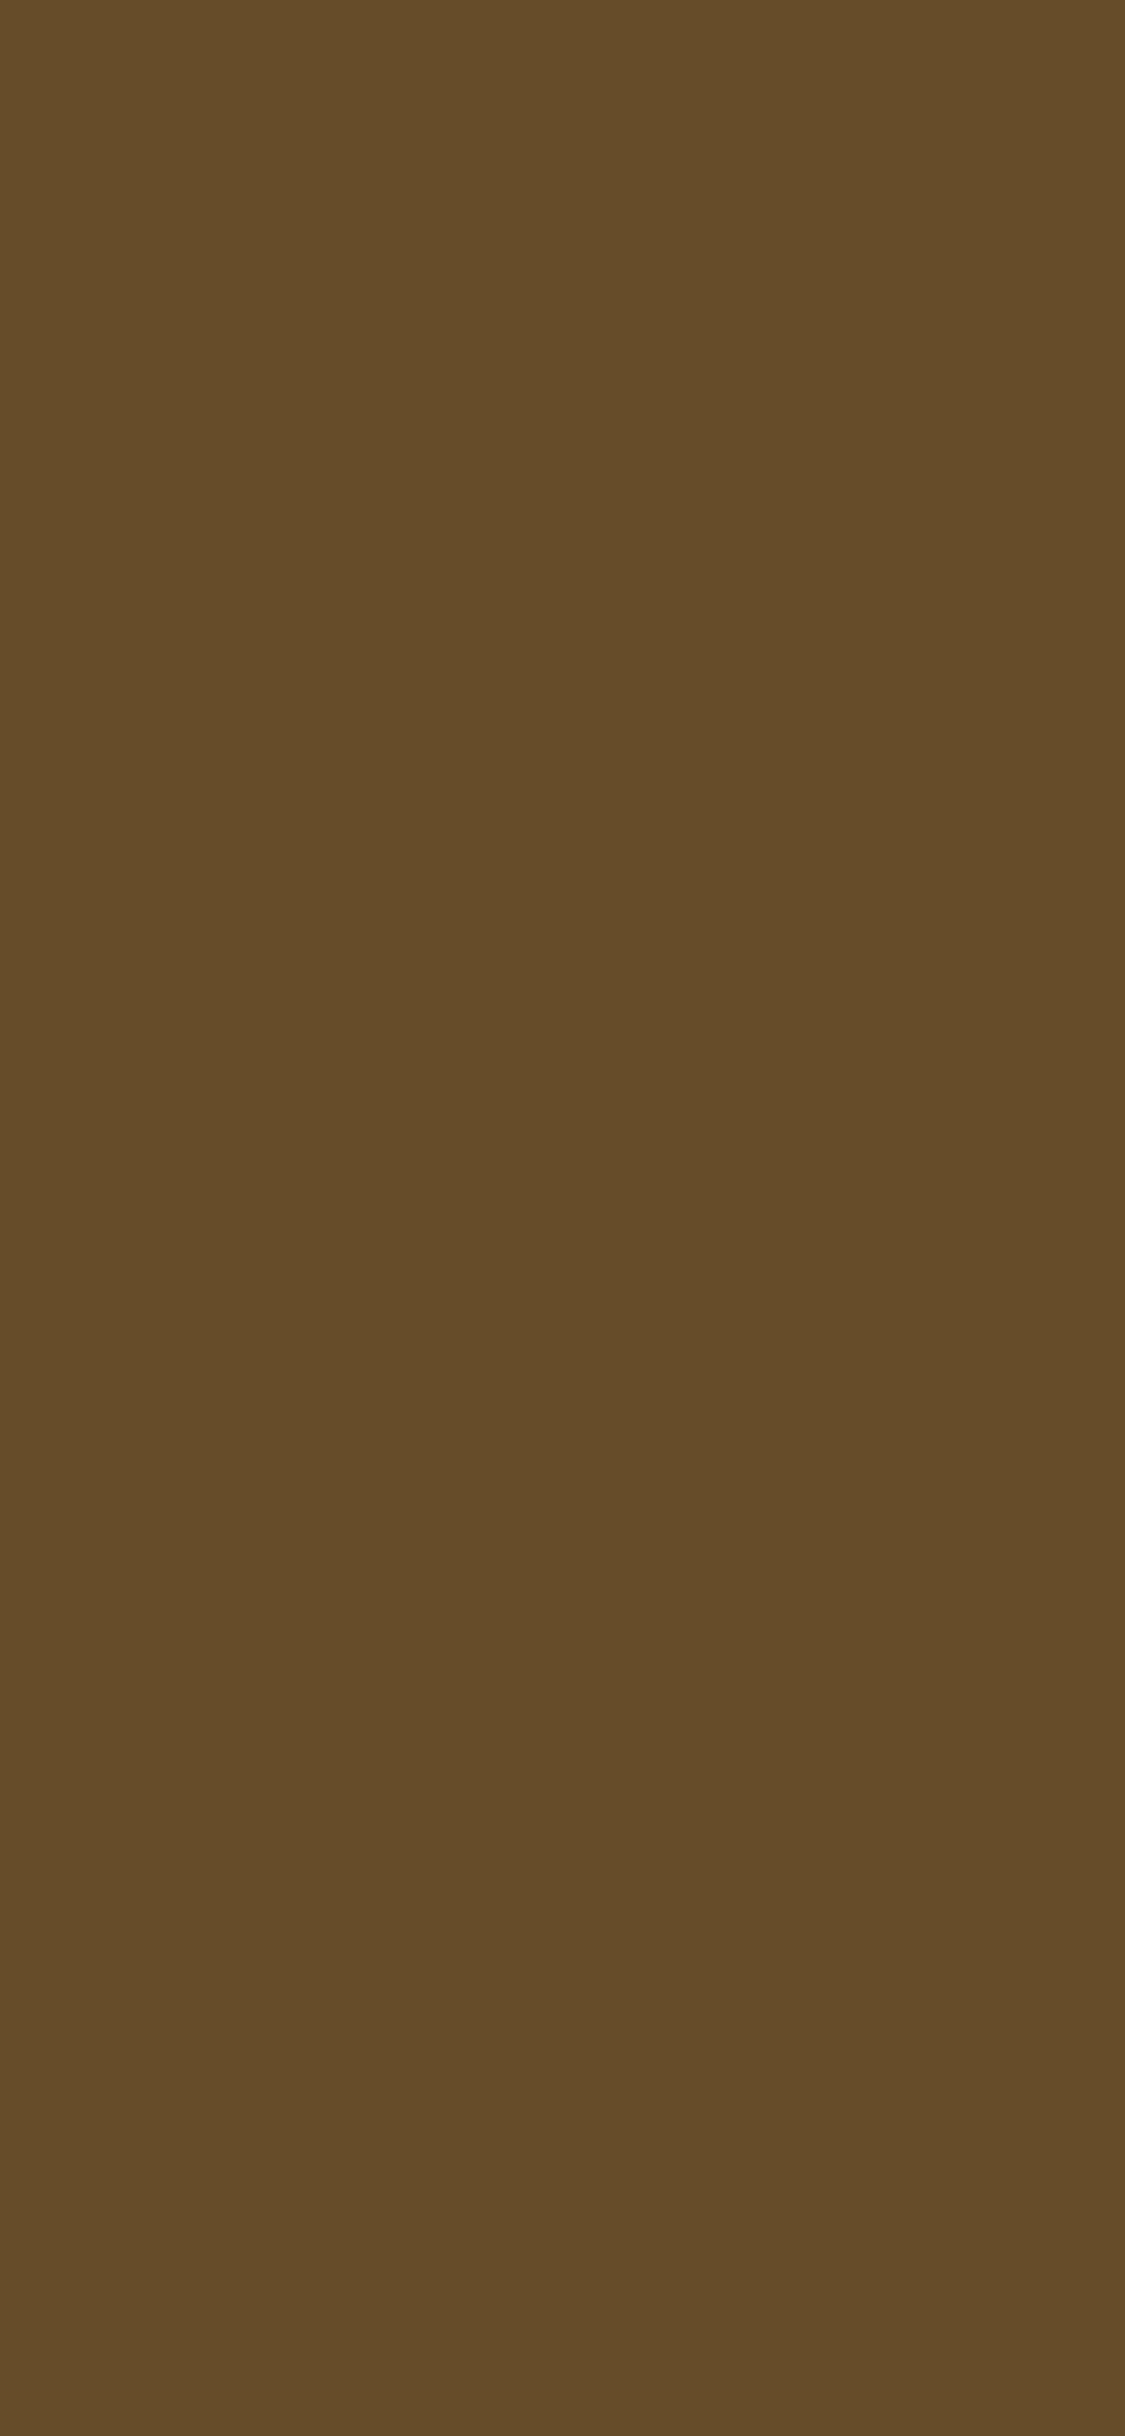 1125x2436 Donkey Brown Solid Color Background